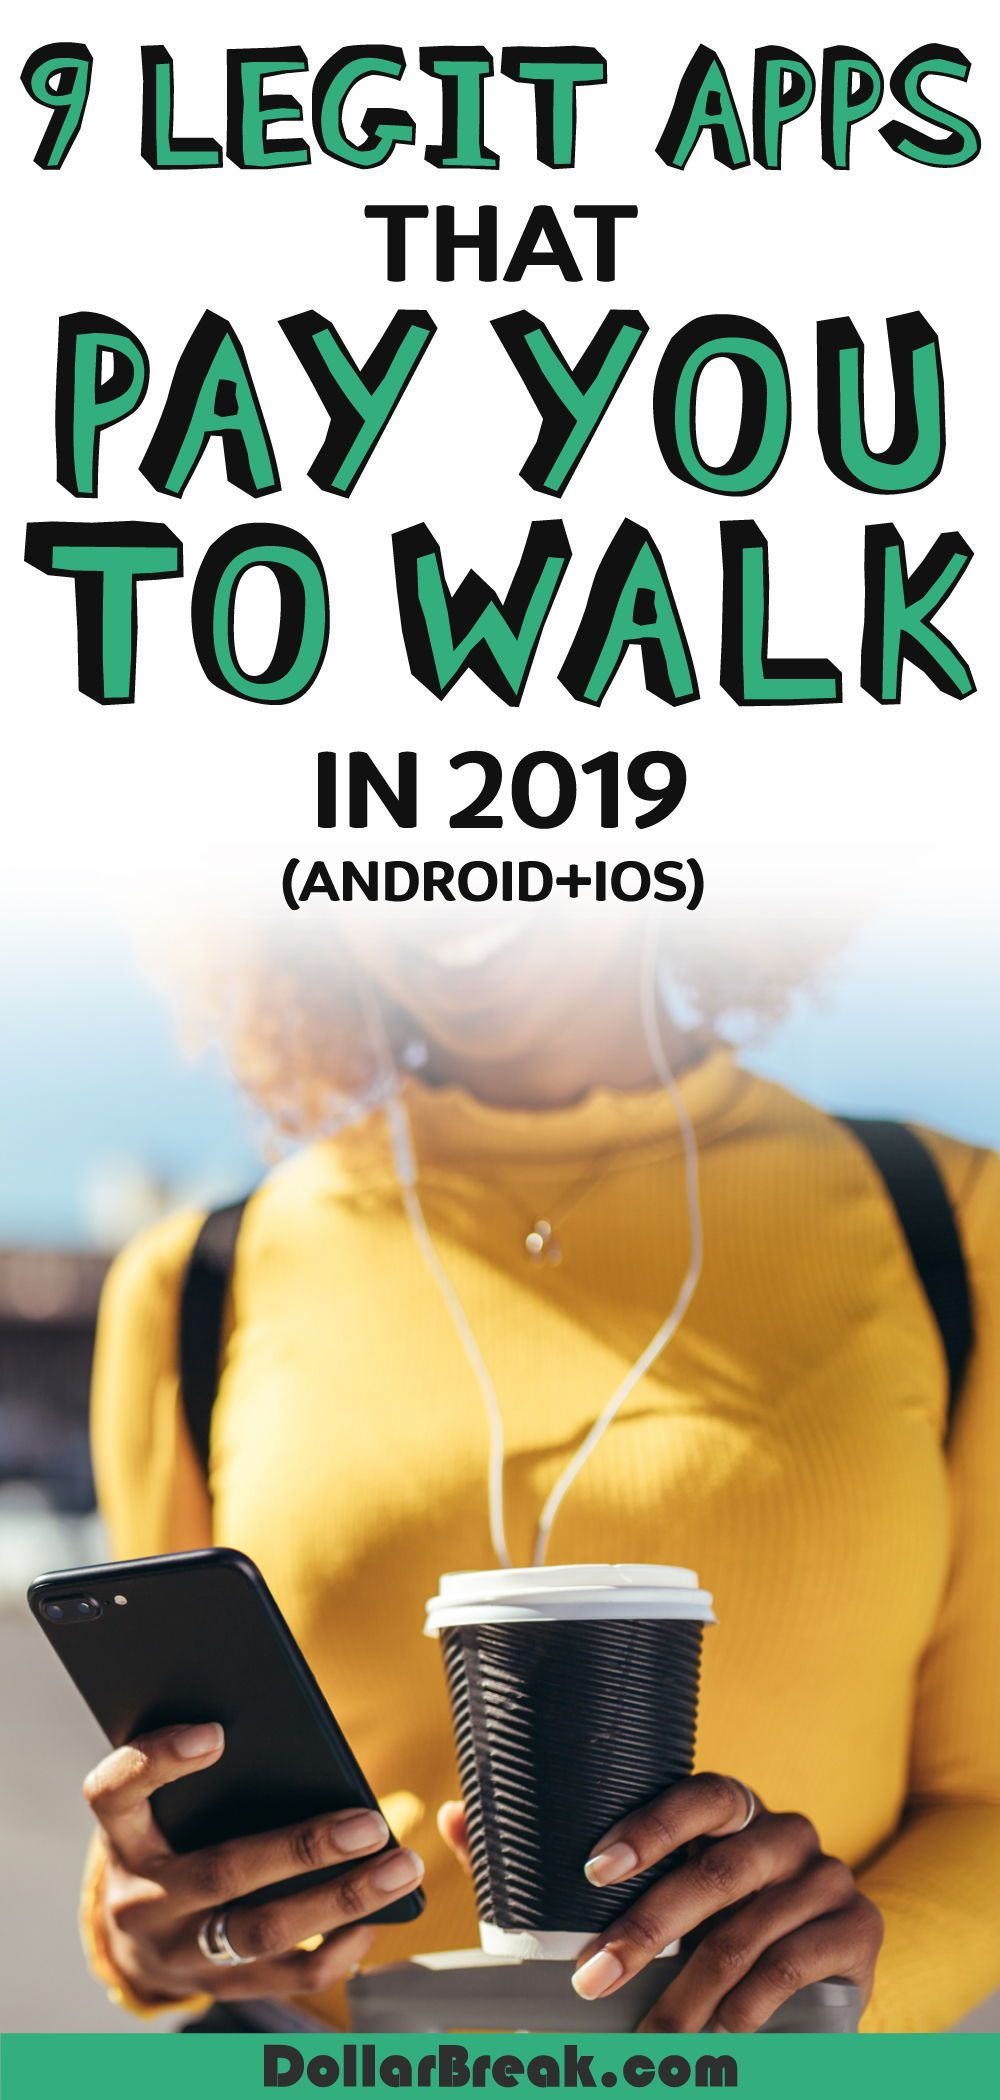 9 Legit Apps that Pay You to Walk in 2020 (Android+IOS